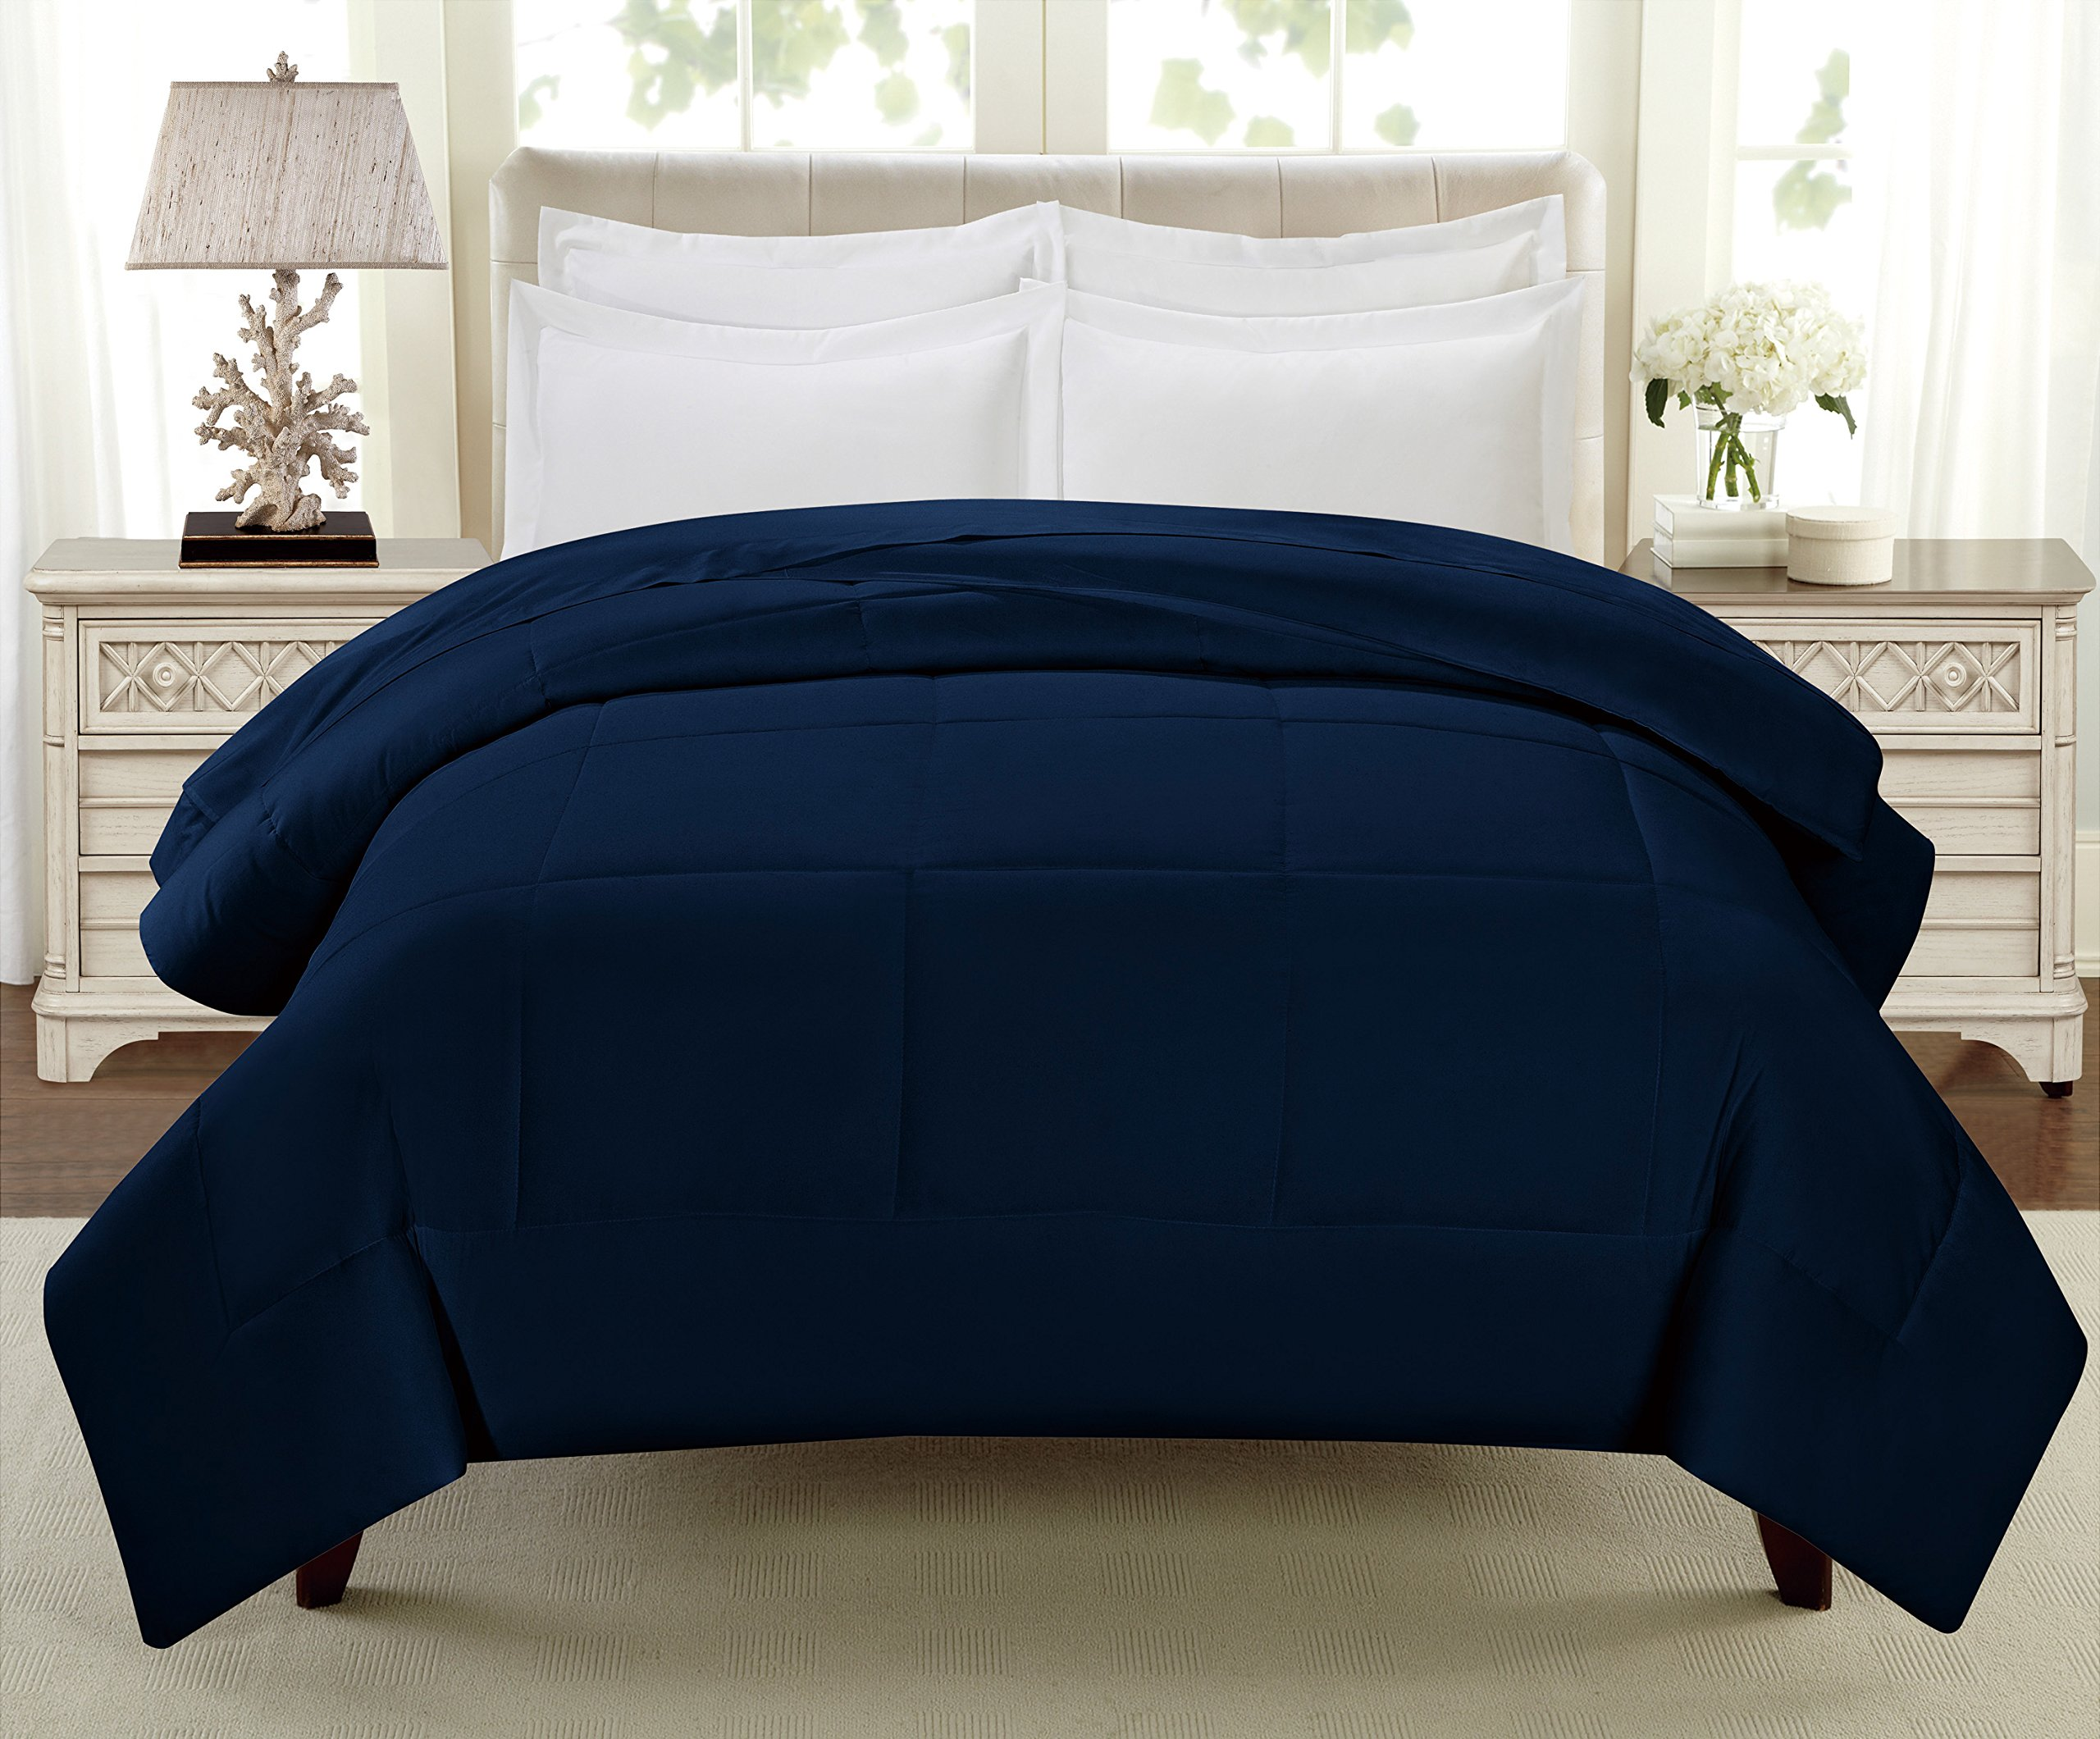 Swift Home All-Season Extra Soft Luxurious Classic Light-Warmth Goose Down-Alternative Comforter, Queen 90'' x 90'', Navy by Swift Home (Image #7)